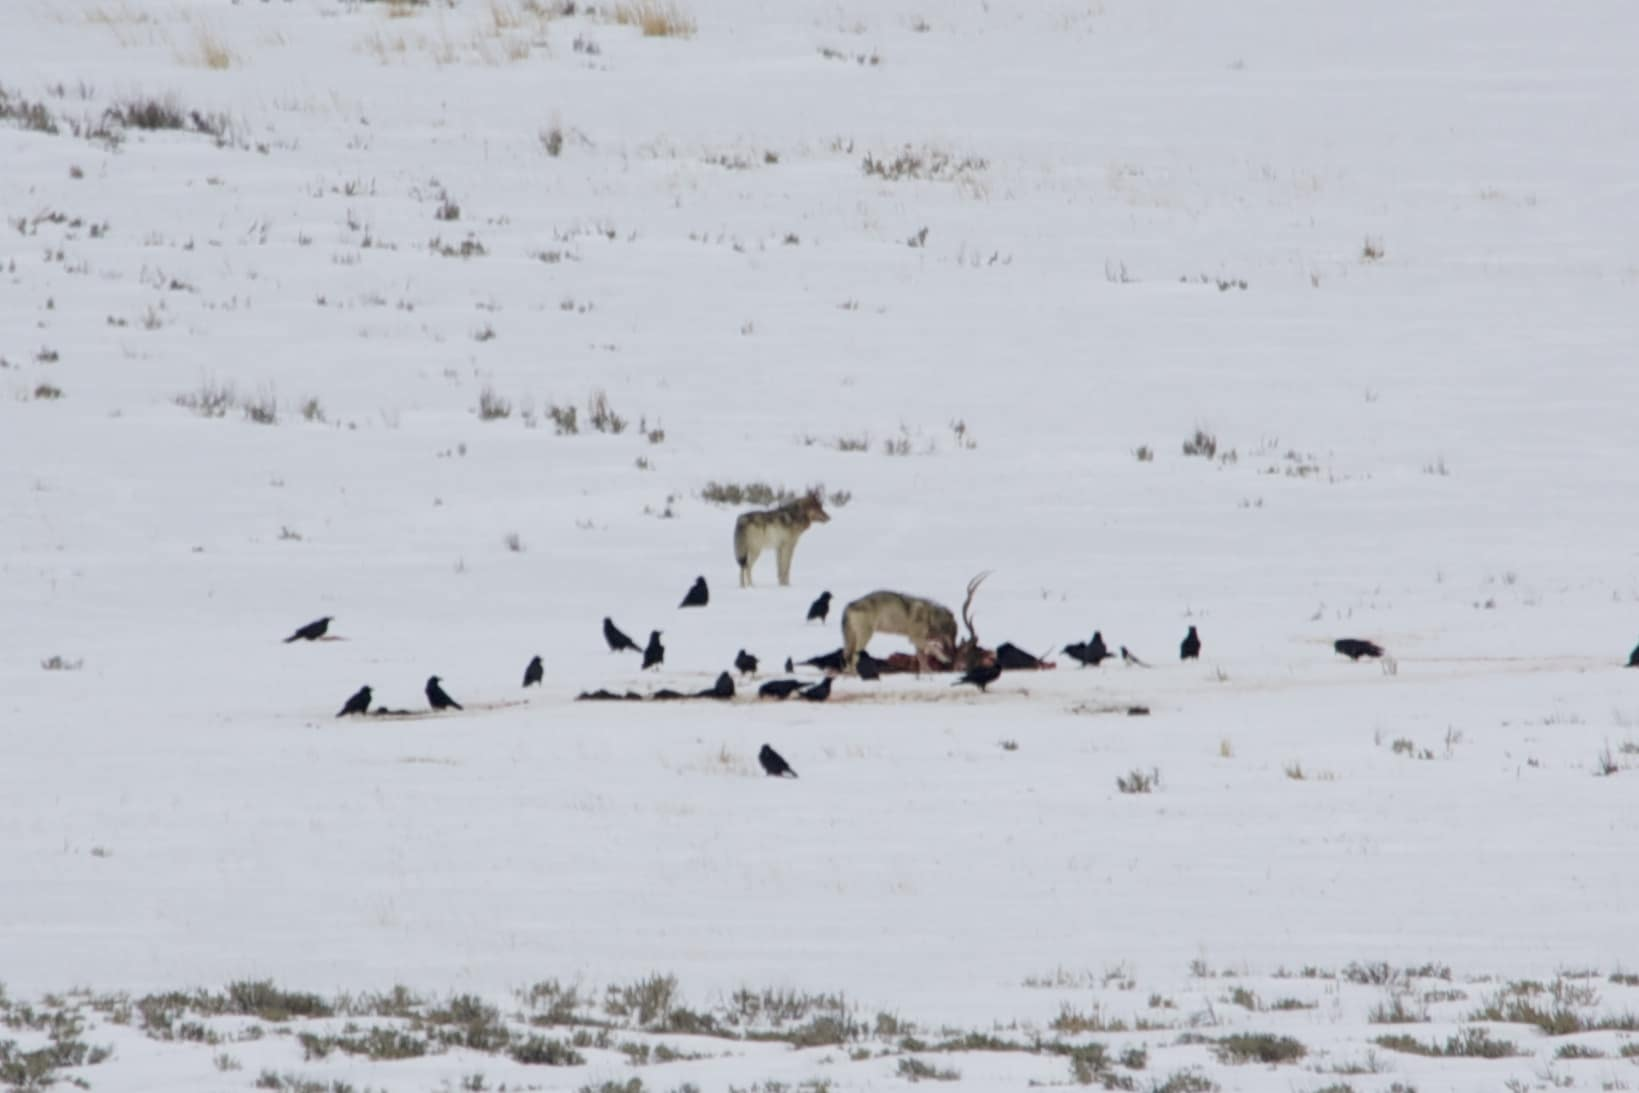 Day 7: Yellowstone Wolves Part 2